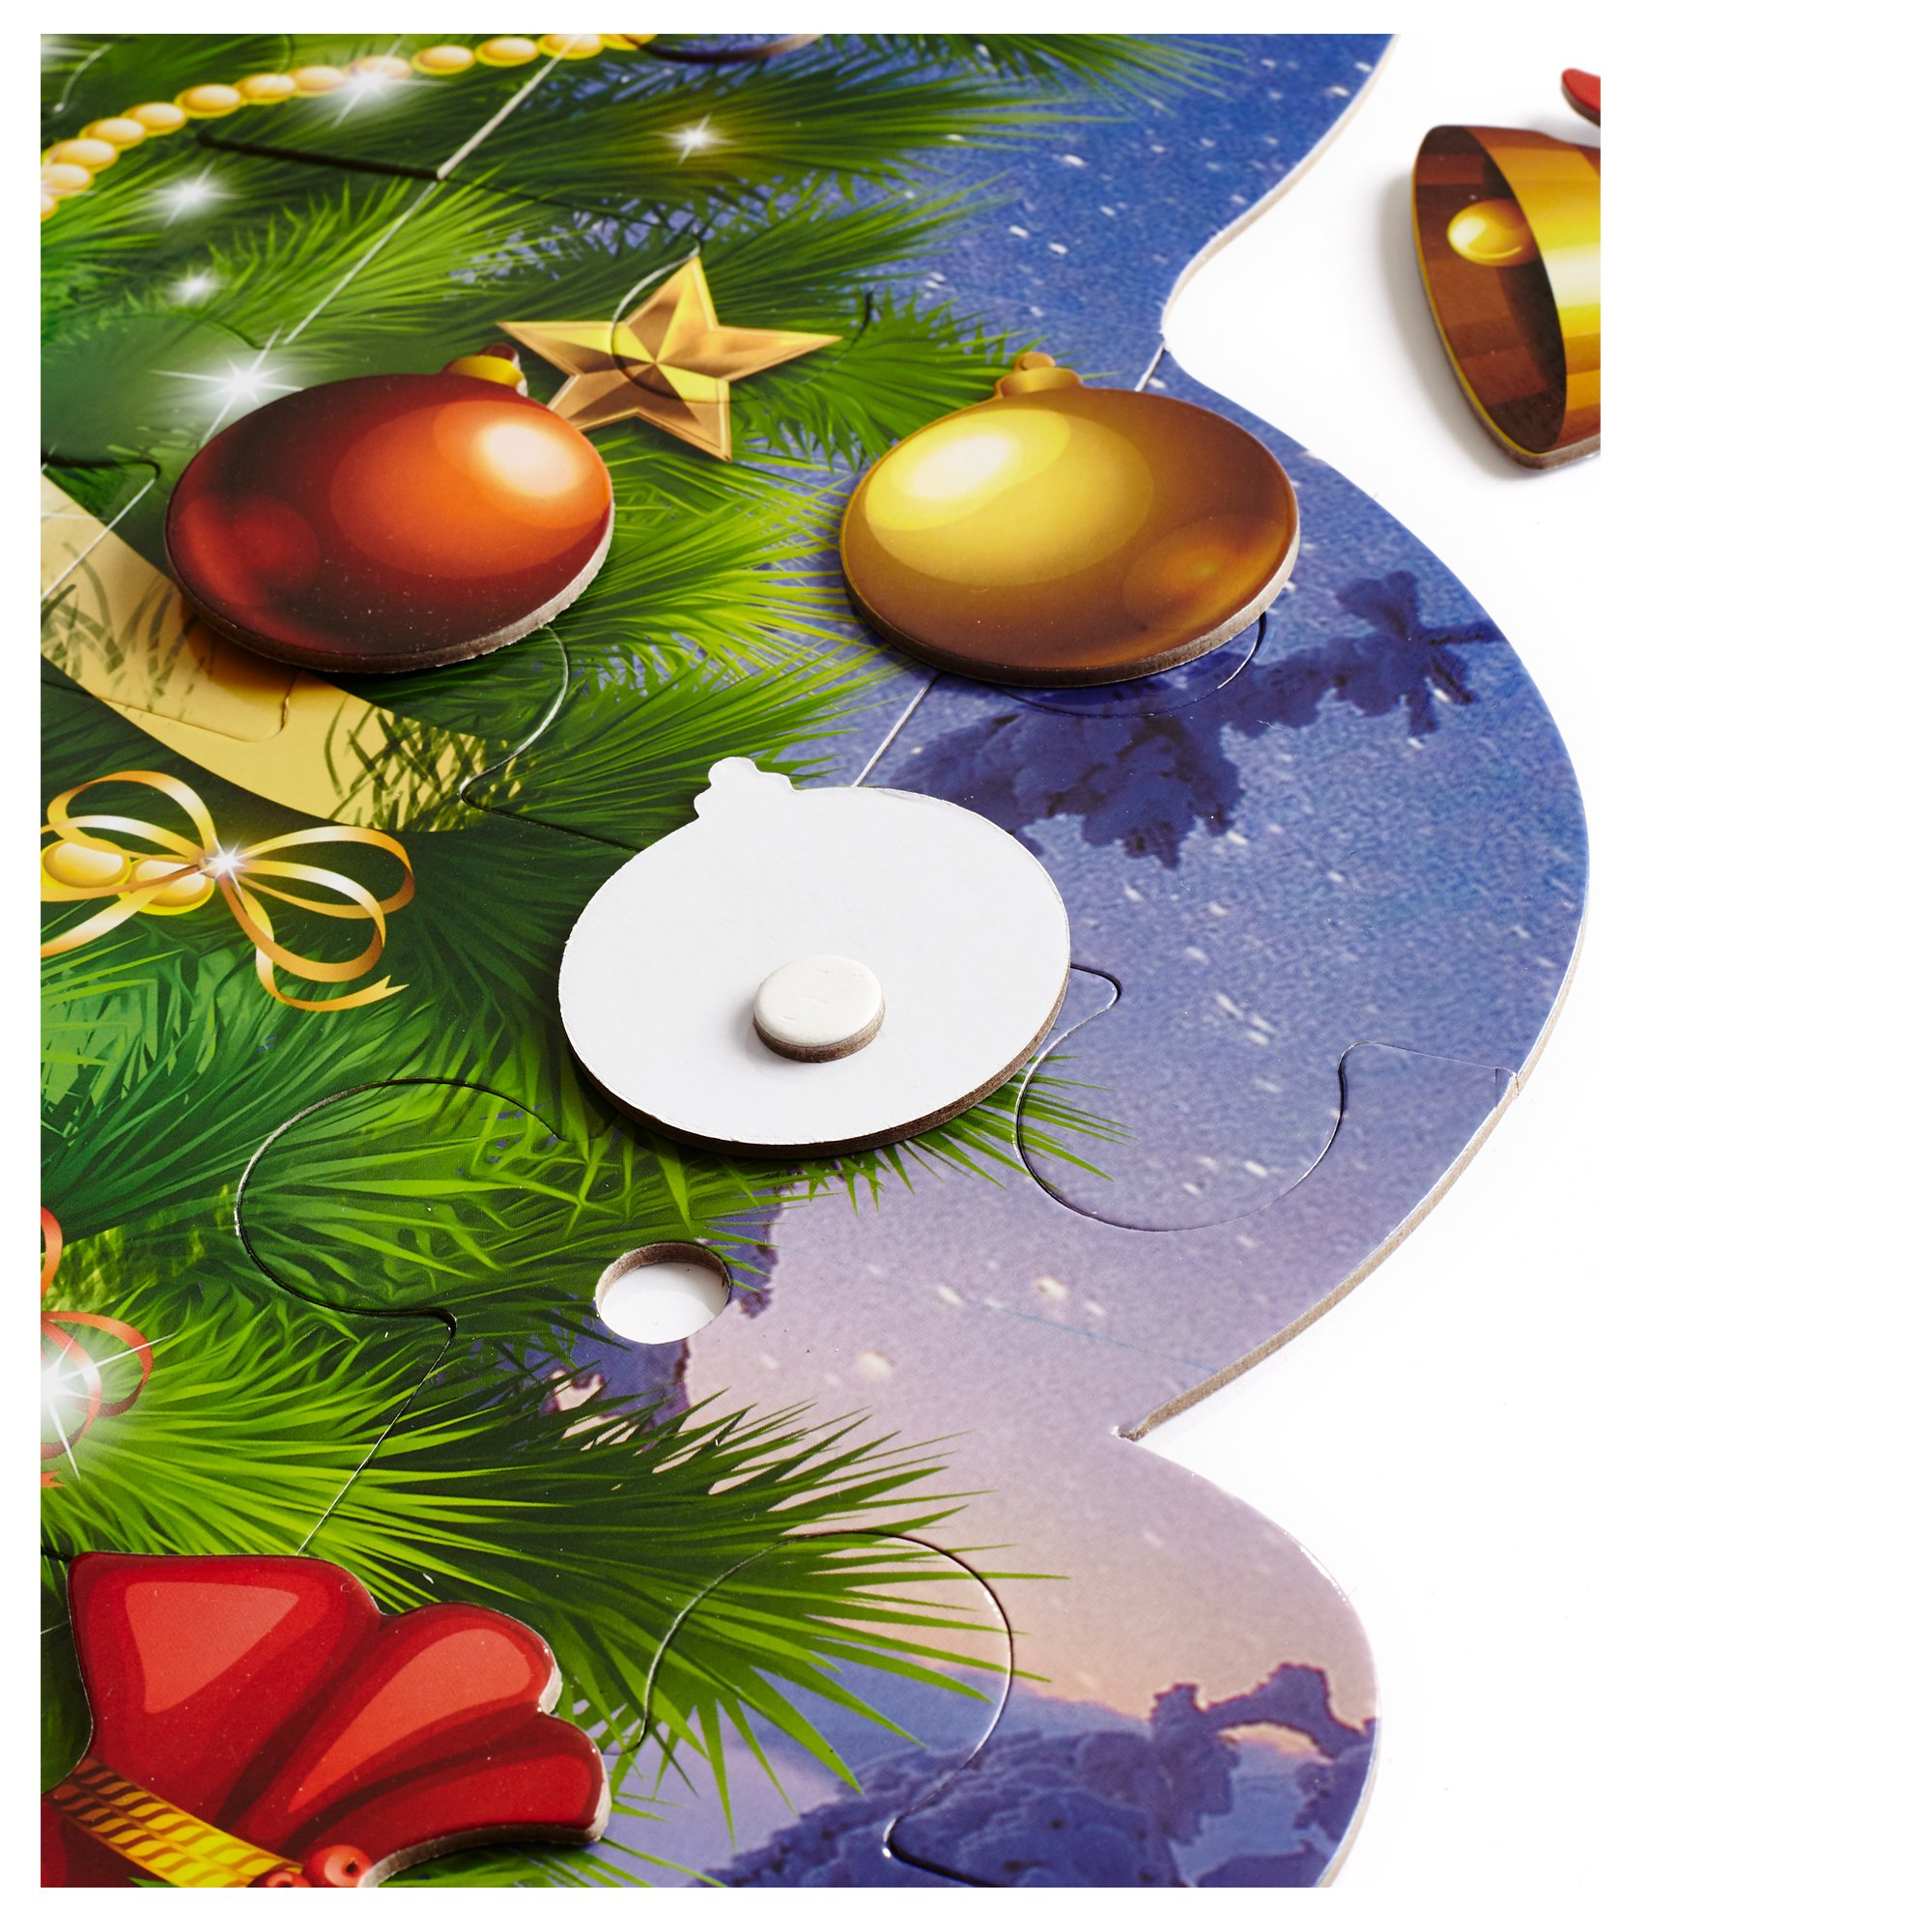 Educational Christmas Tree Floor Puzzle +29PC Ornaments kit -Let Your Children Decorate Their Own Tree -Puzzles For Kids 4 Years Old Will teach to follow design & coordination-not trail & error method by Mind Tools (Image #1)